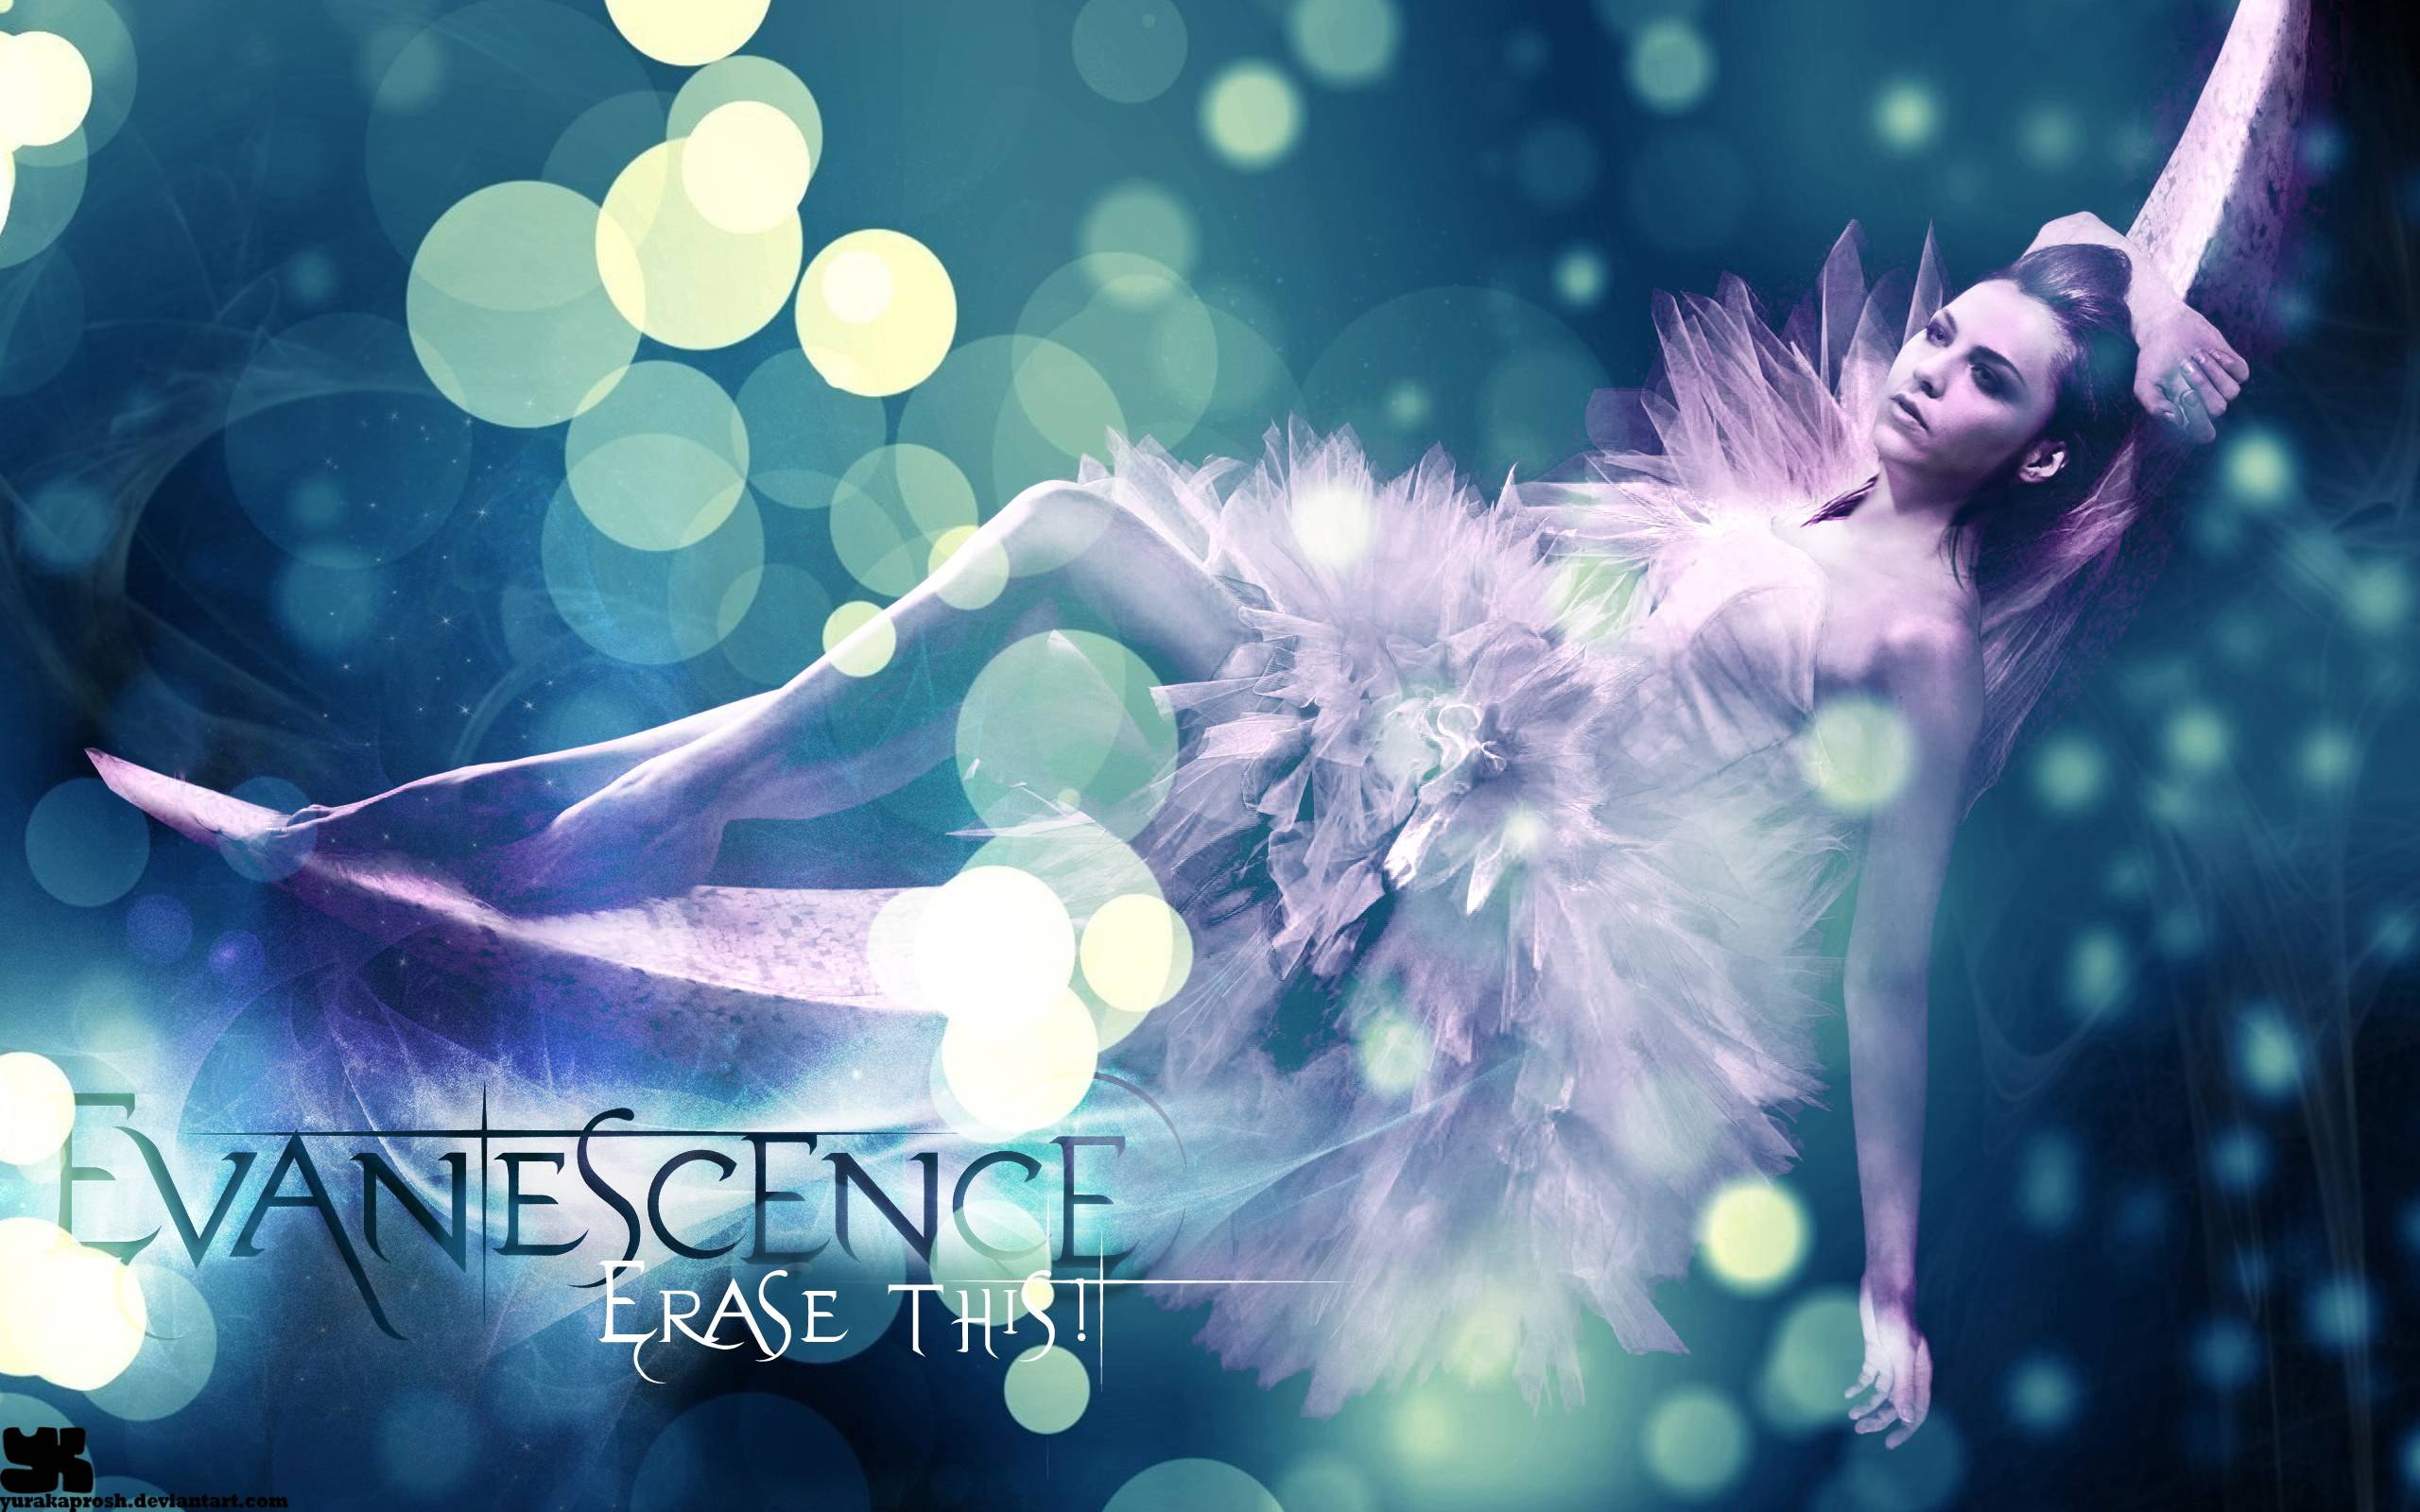 Evanescence Wallpapers 2015 2560x1600